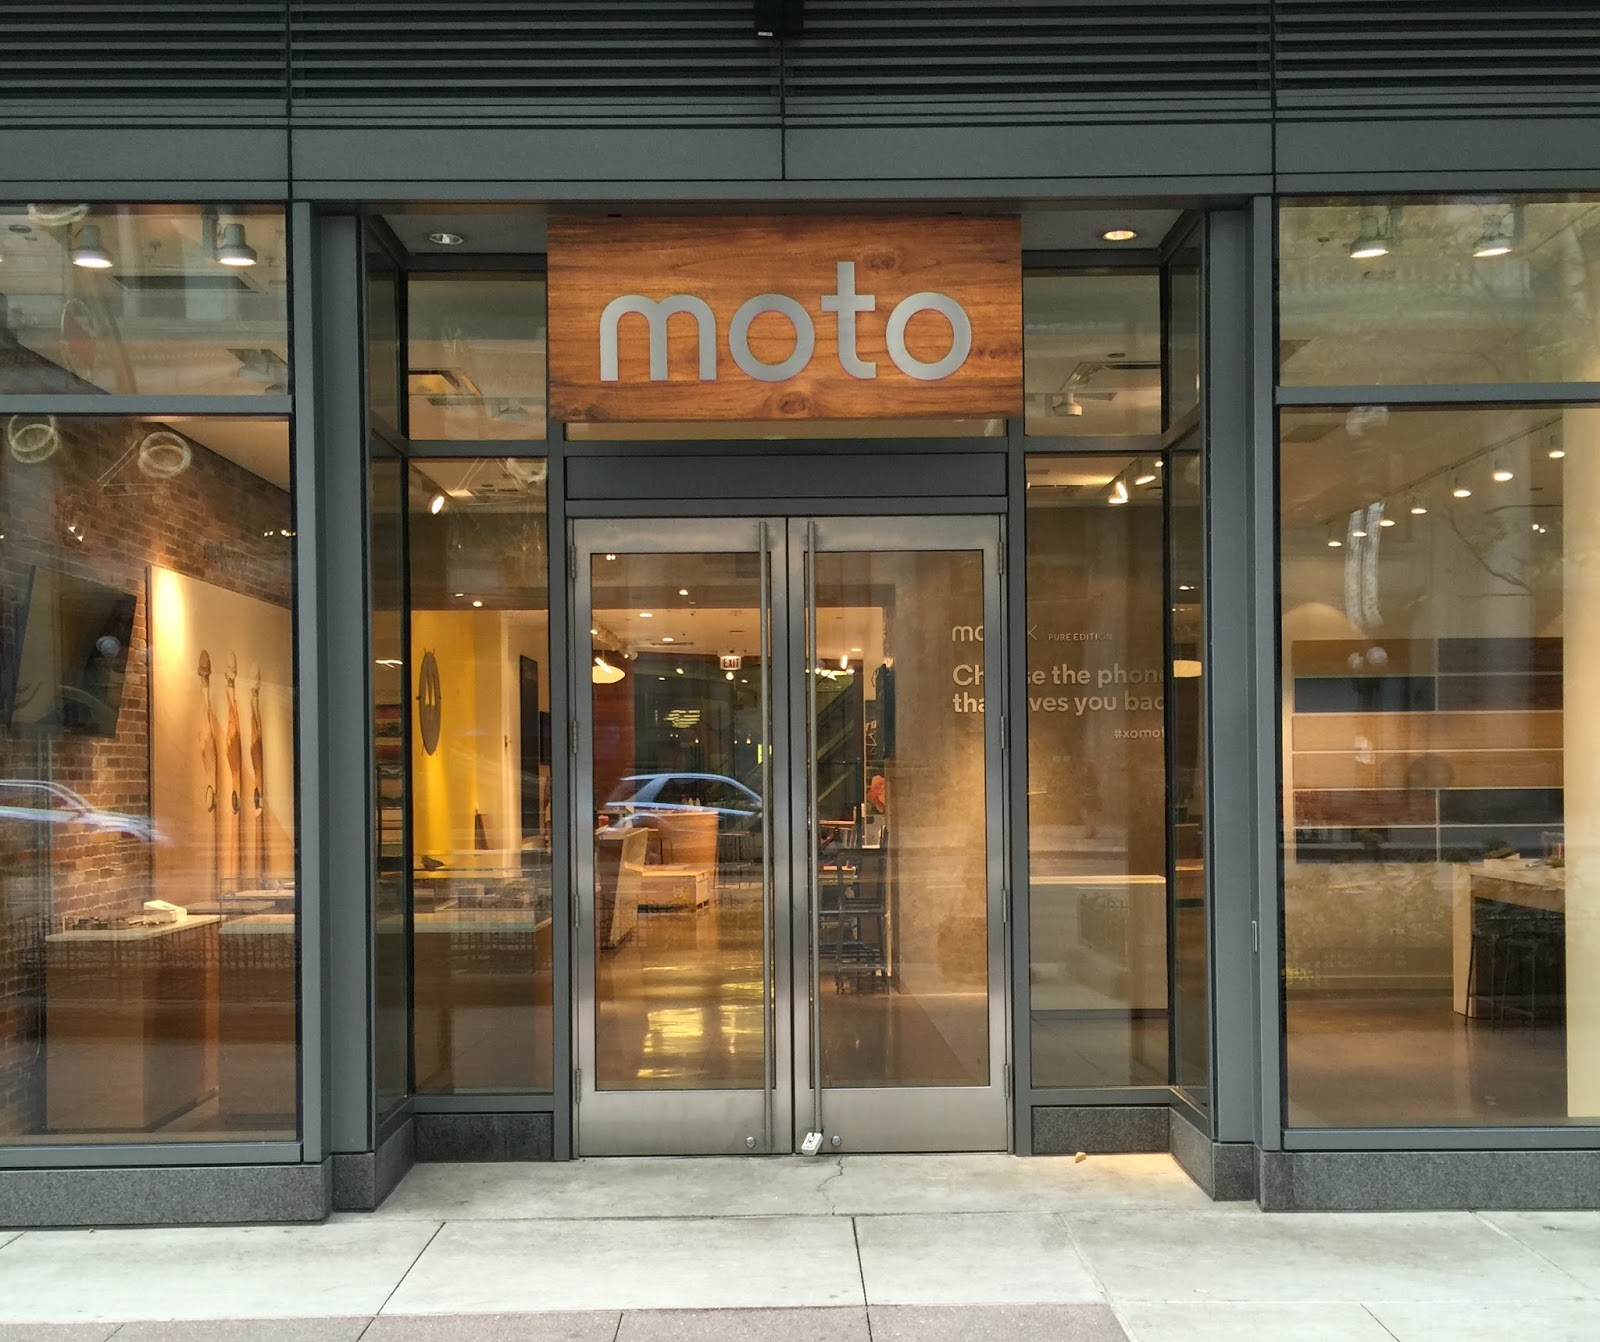 motorola opening up its own storefront in chicago for the holiday